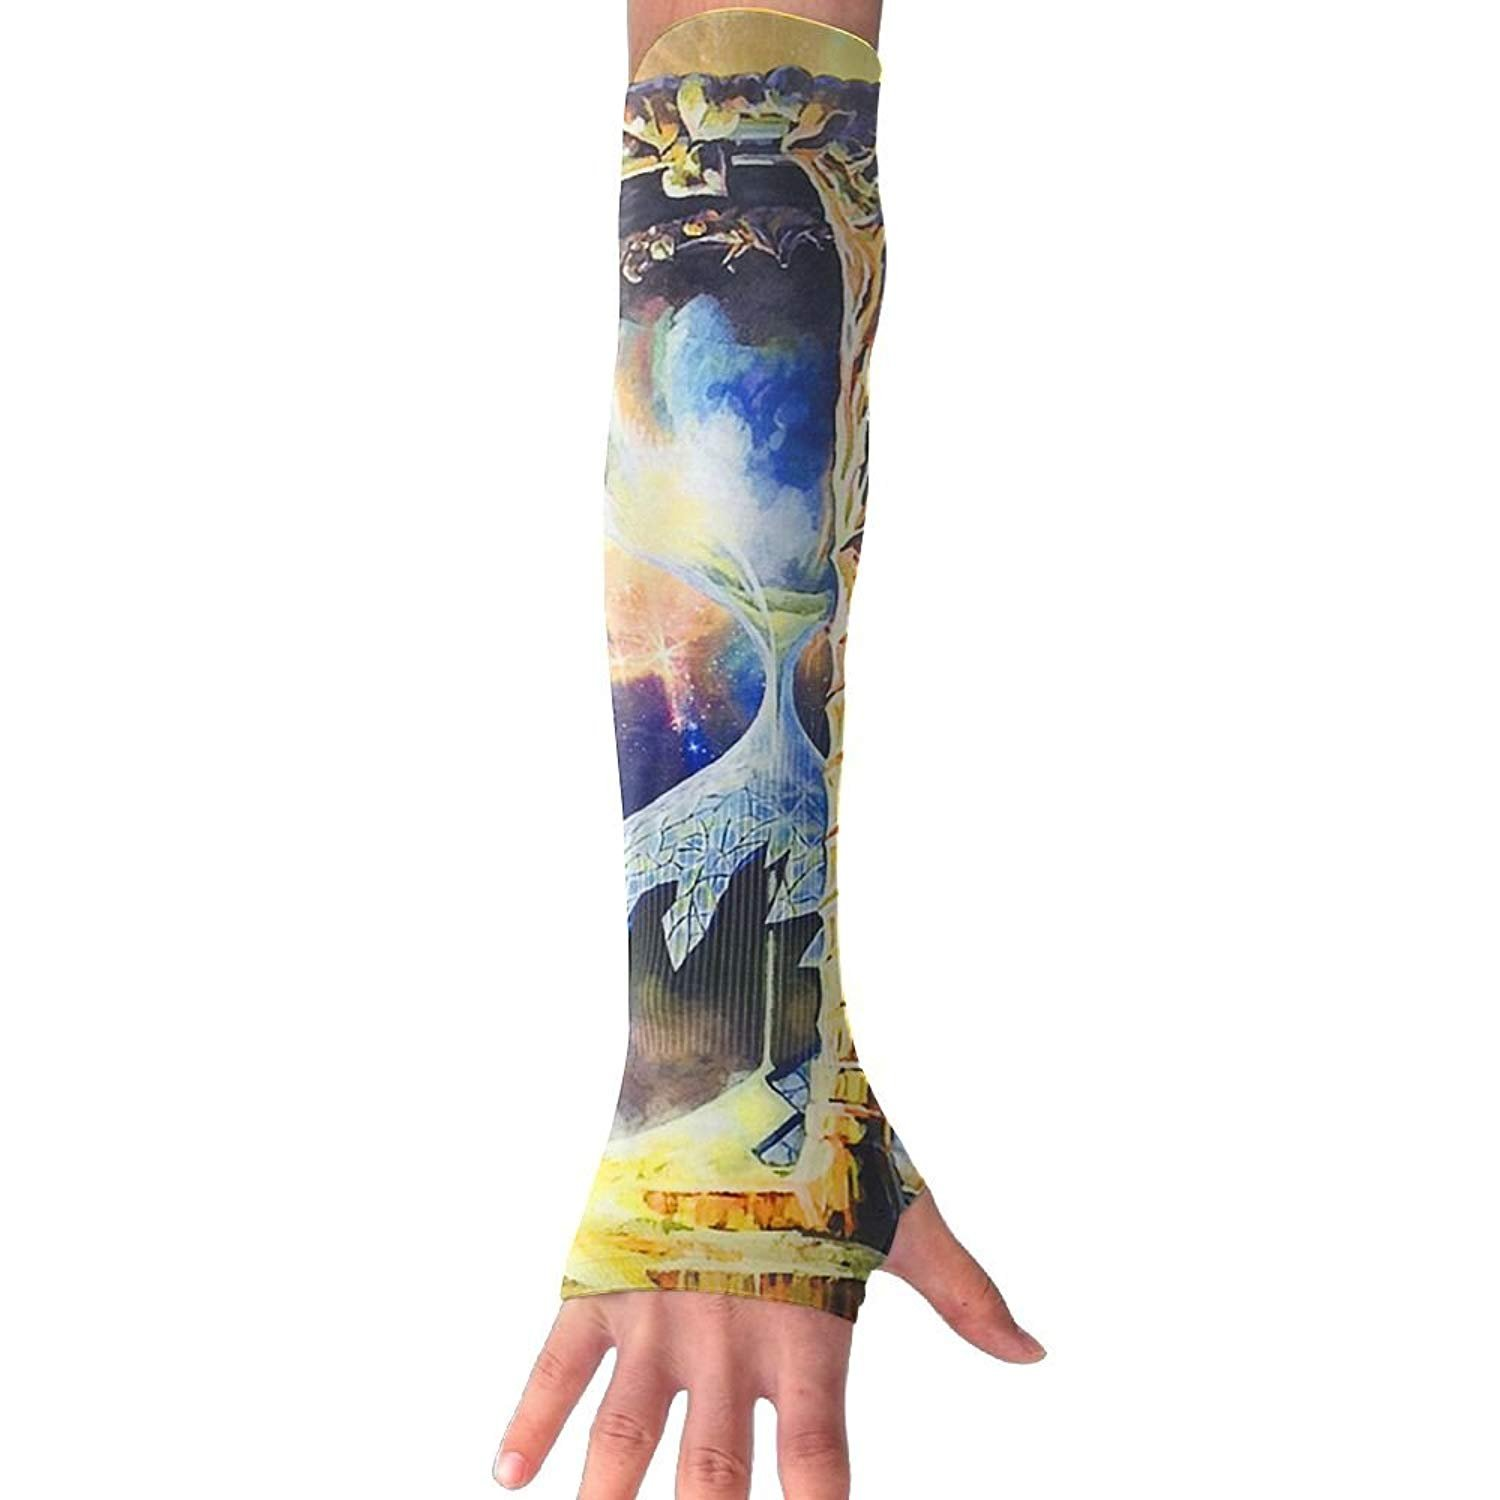 Unisex Galaxy Hourglass Design Sense Ice Outdoor Travel Arm Warmer Long Sleeves Glove